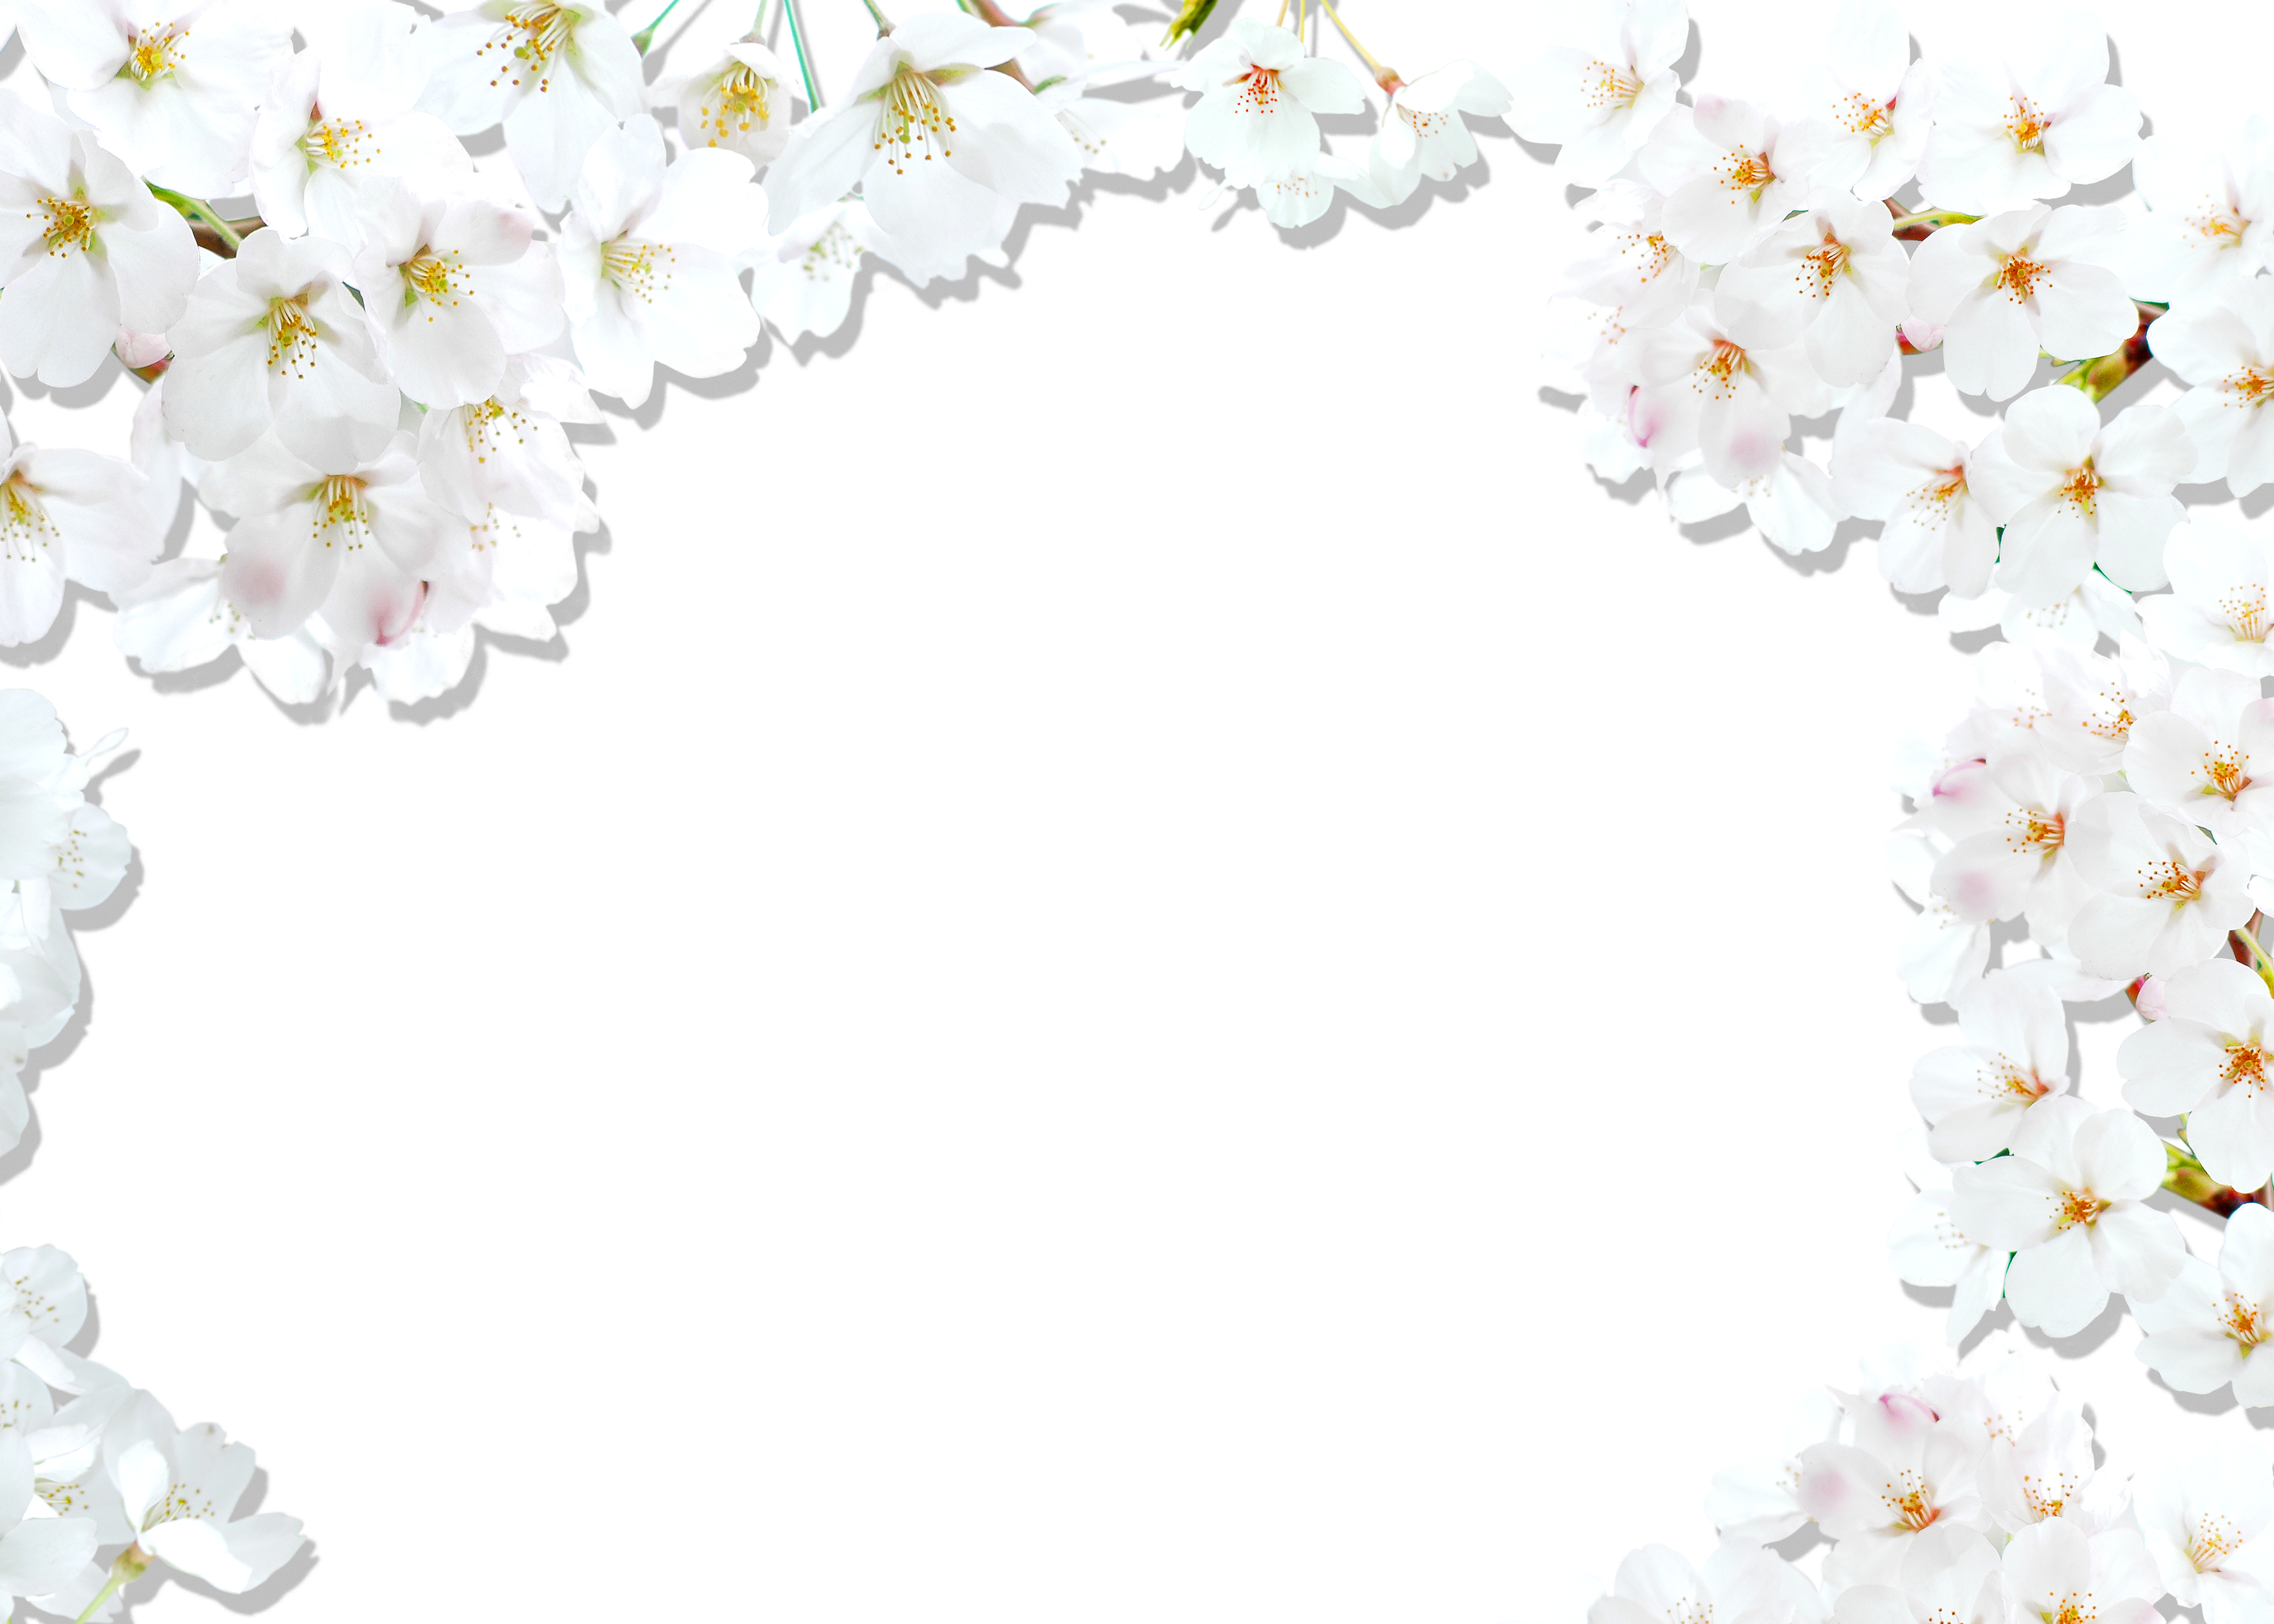 Blossom Cherry National Festival White Border PNG Image